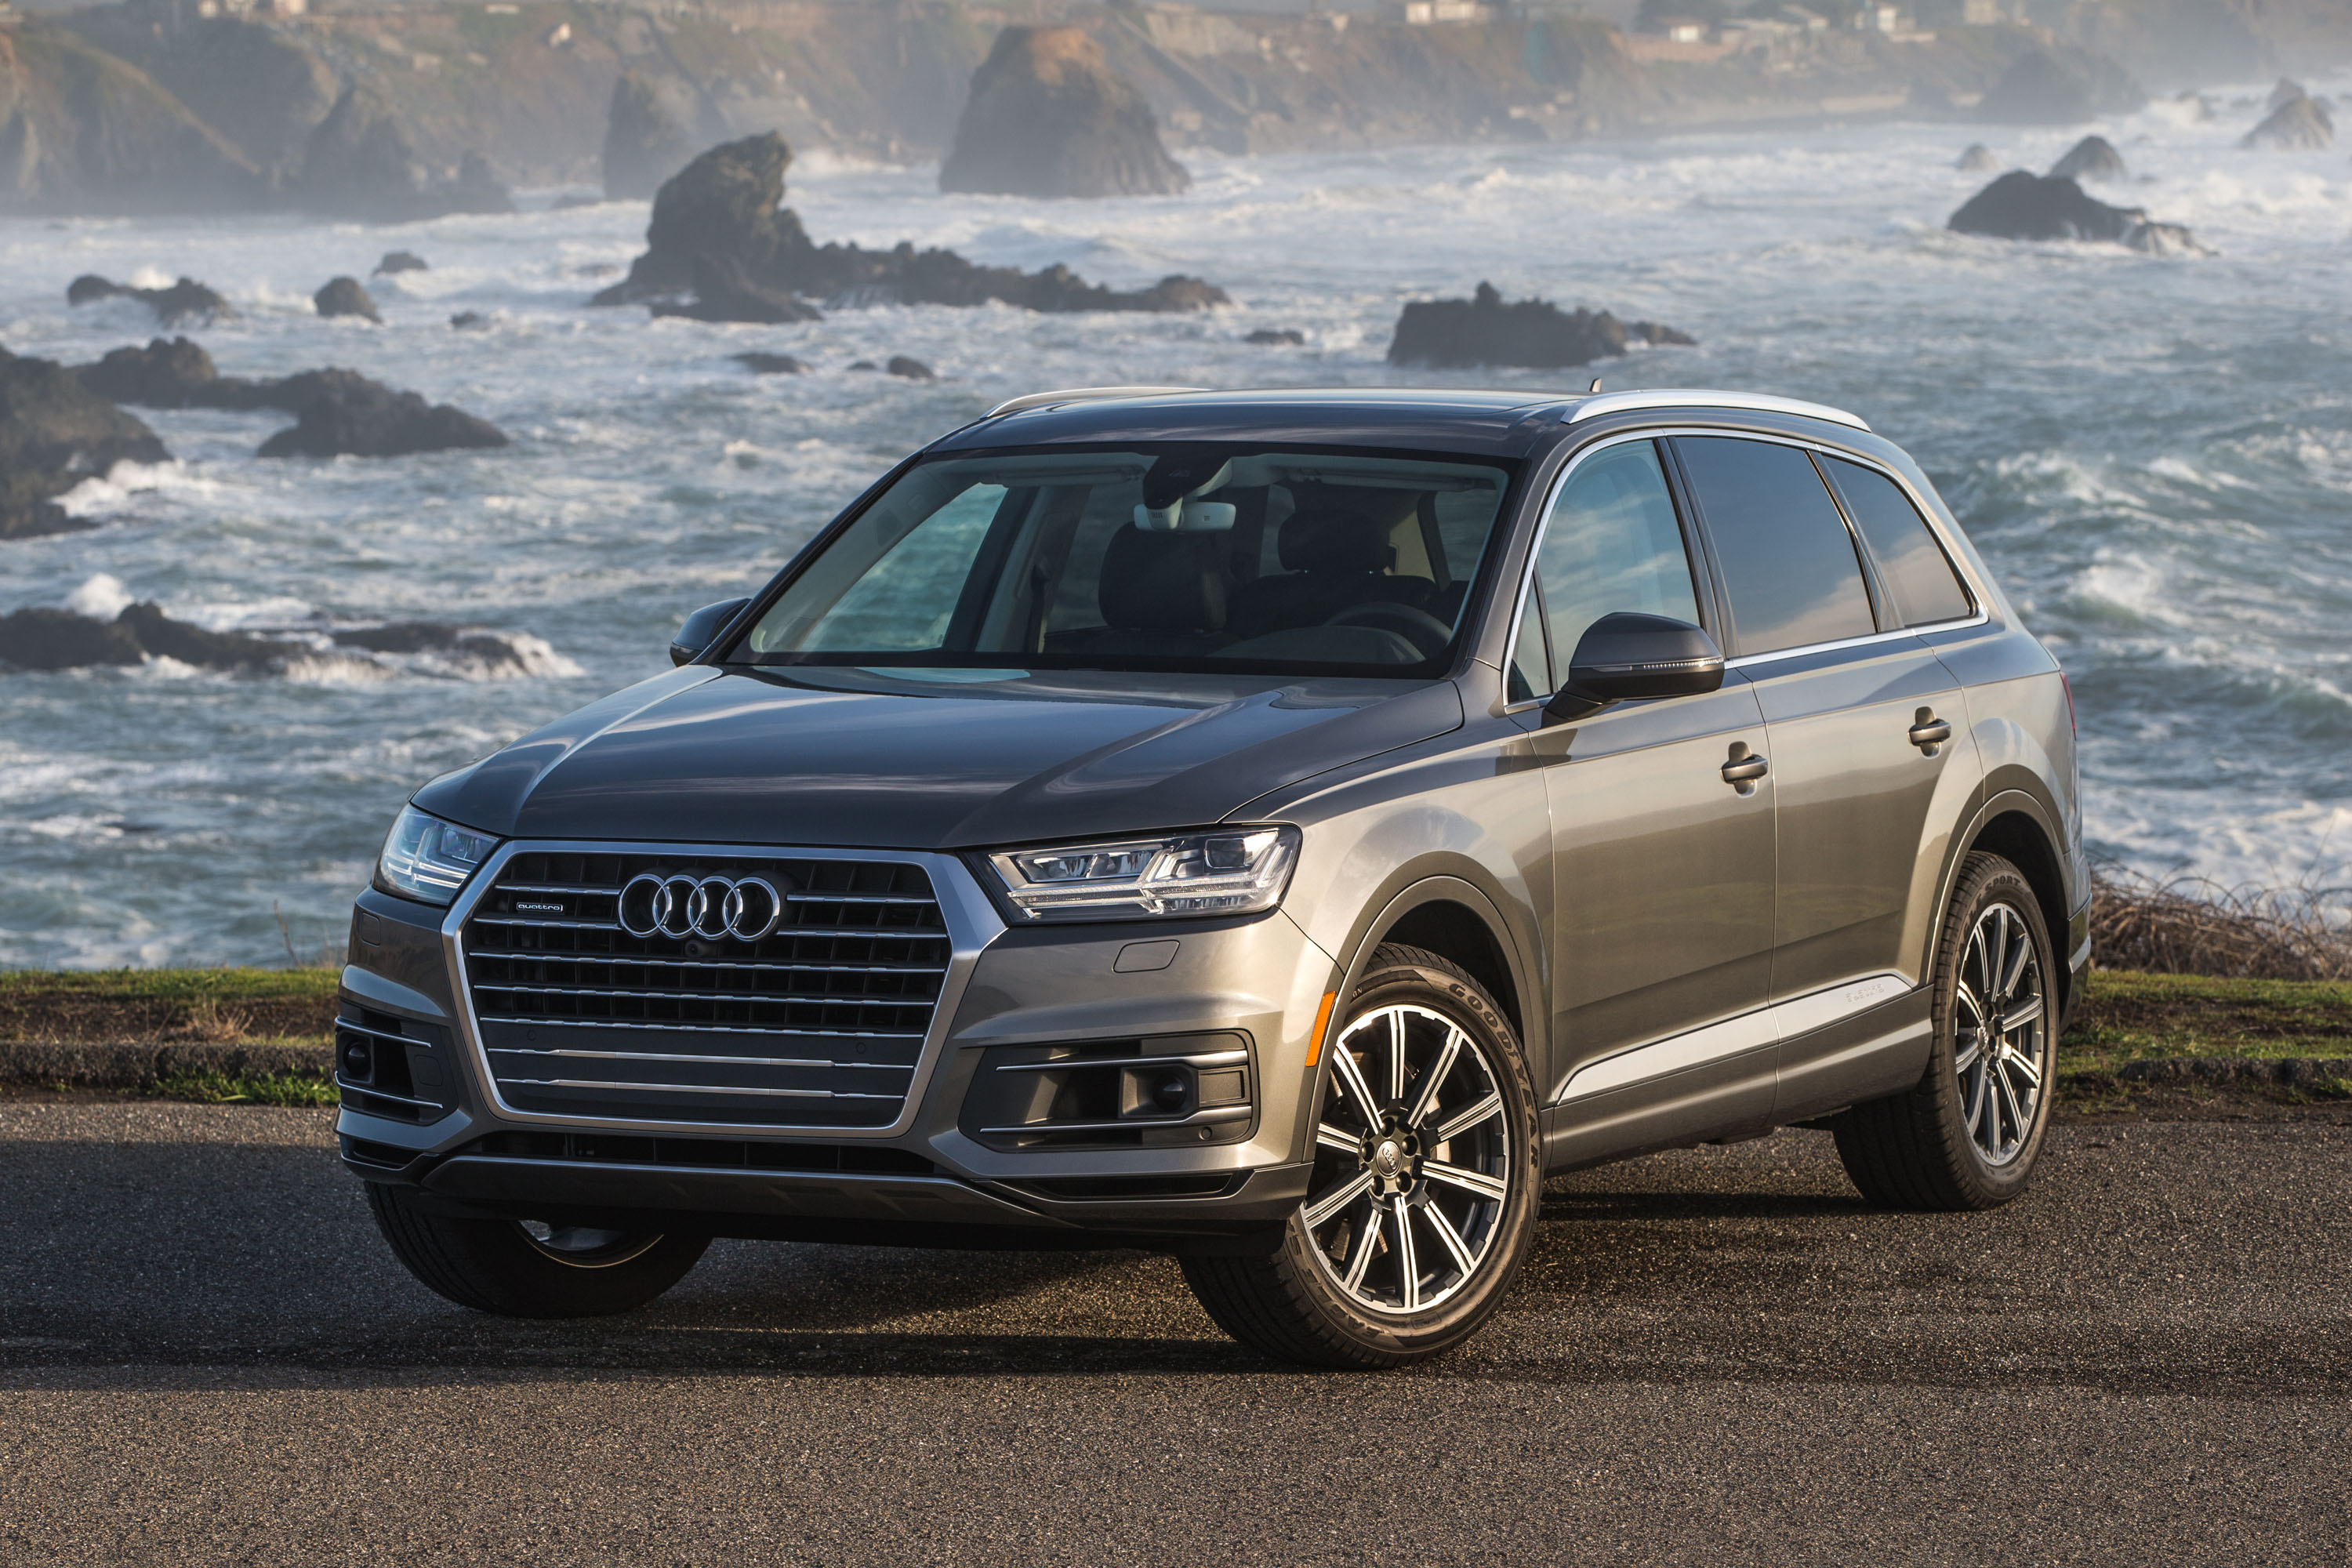 Used Toyota For Sale >> 2018 Audi Q7 Premium Plus First Drive Review